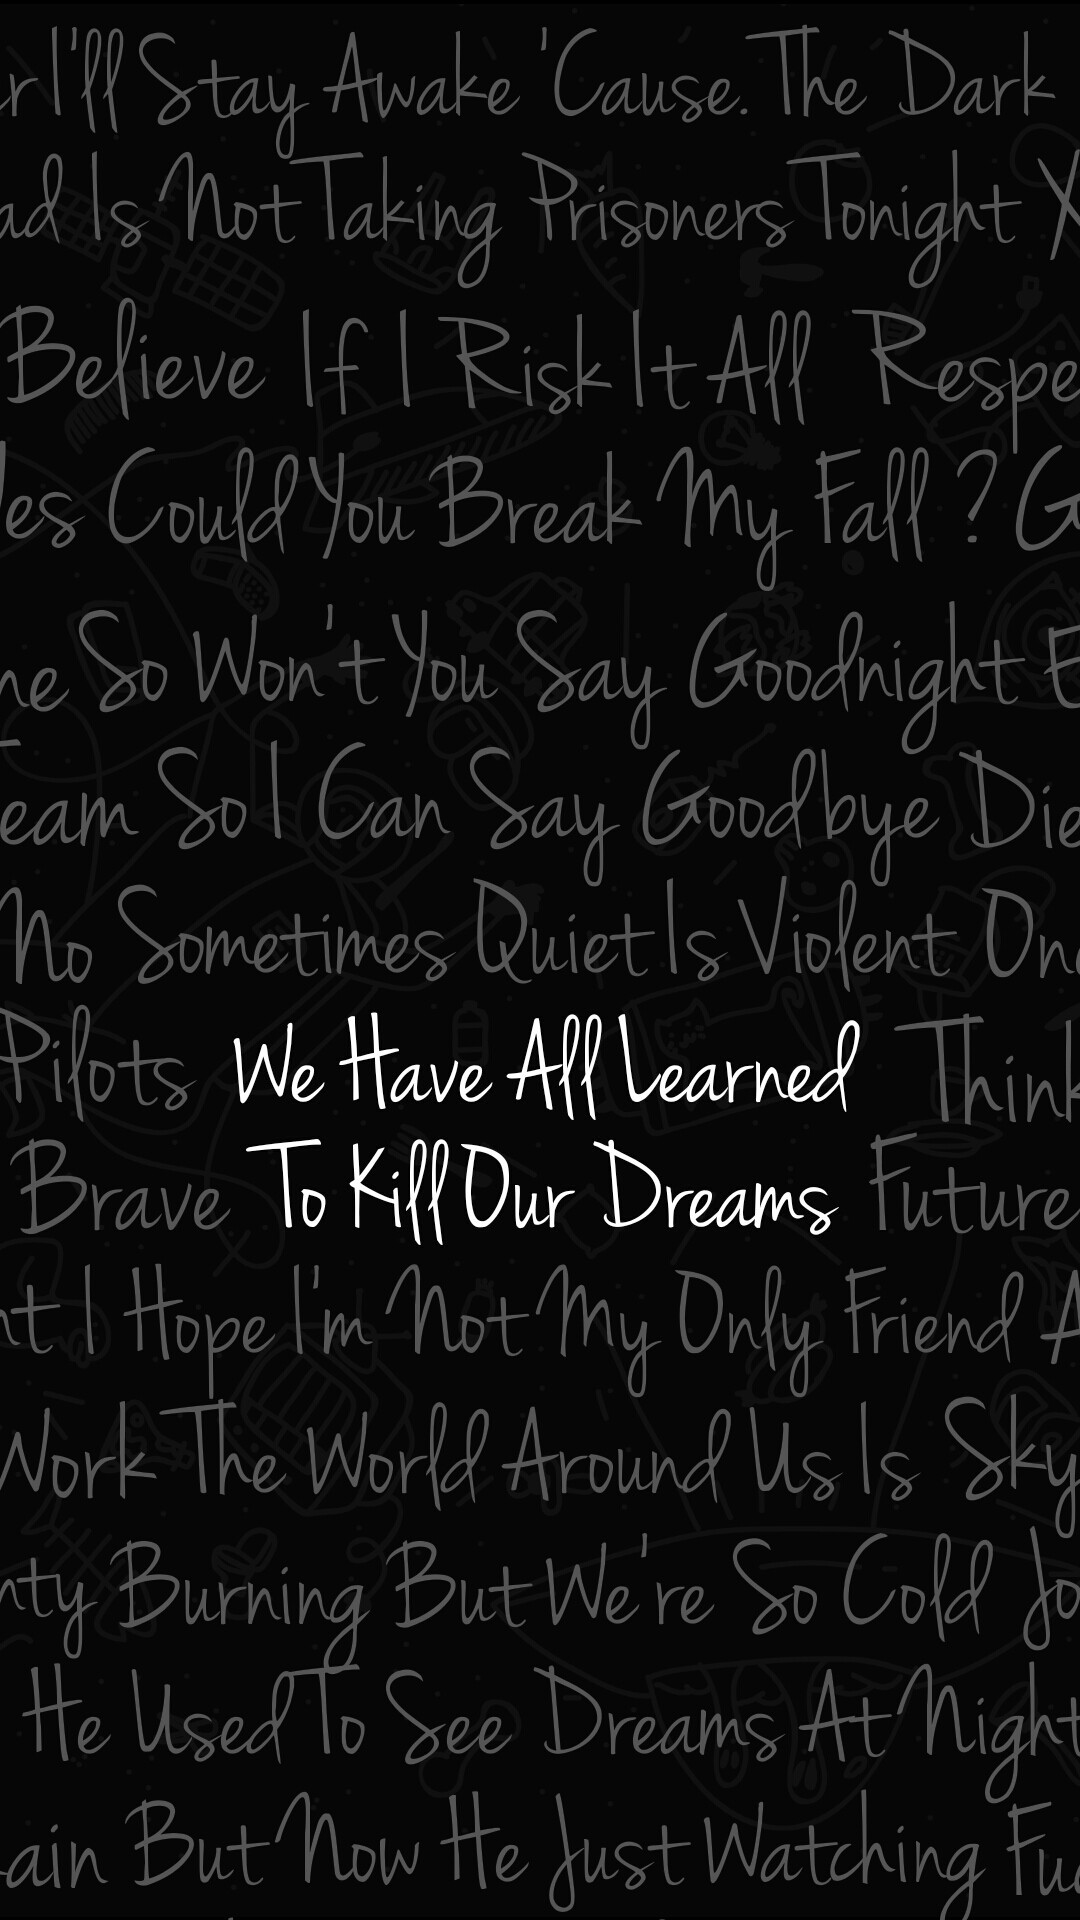 Quotes From The Yellow Wallpaper About Depression Twenty One Pilots Lyrics Wallpaper 89 Images